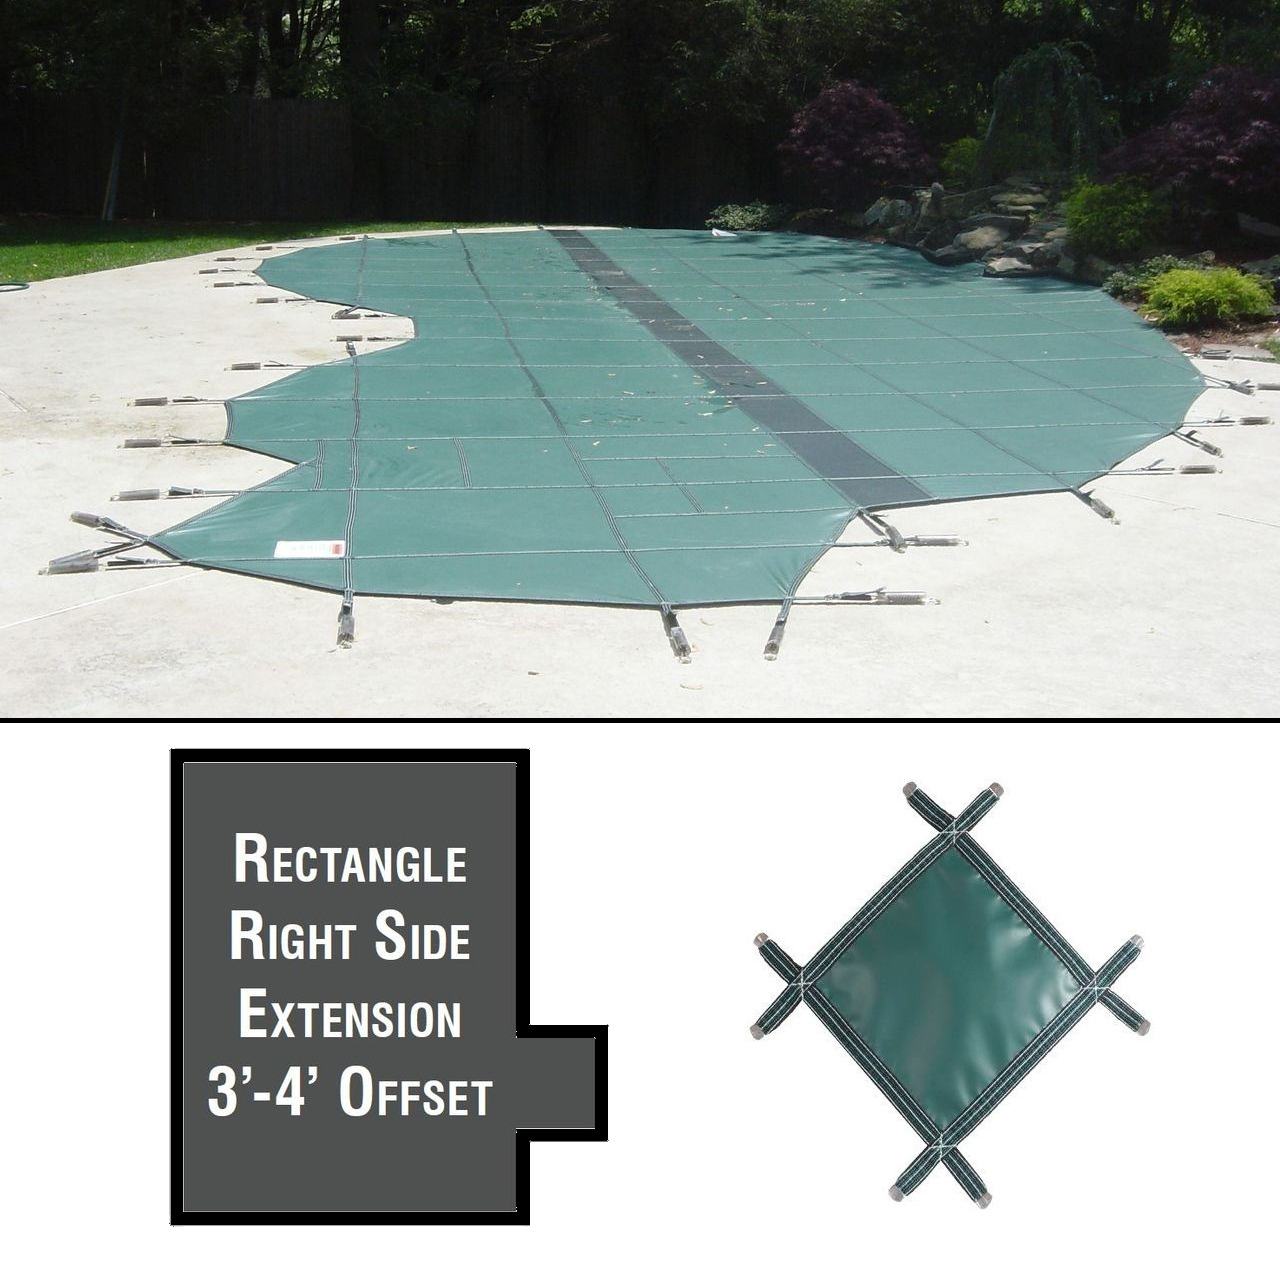 PermaGuard 22'x42' Rectangular Pool Cover Plus Right Ext 4' Offset